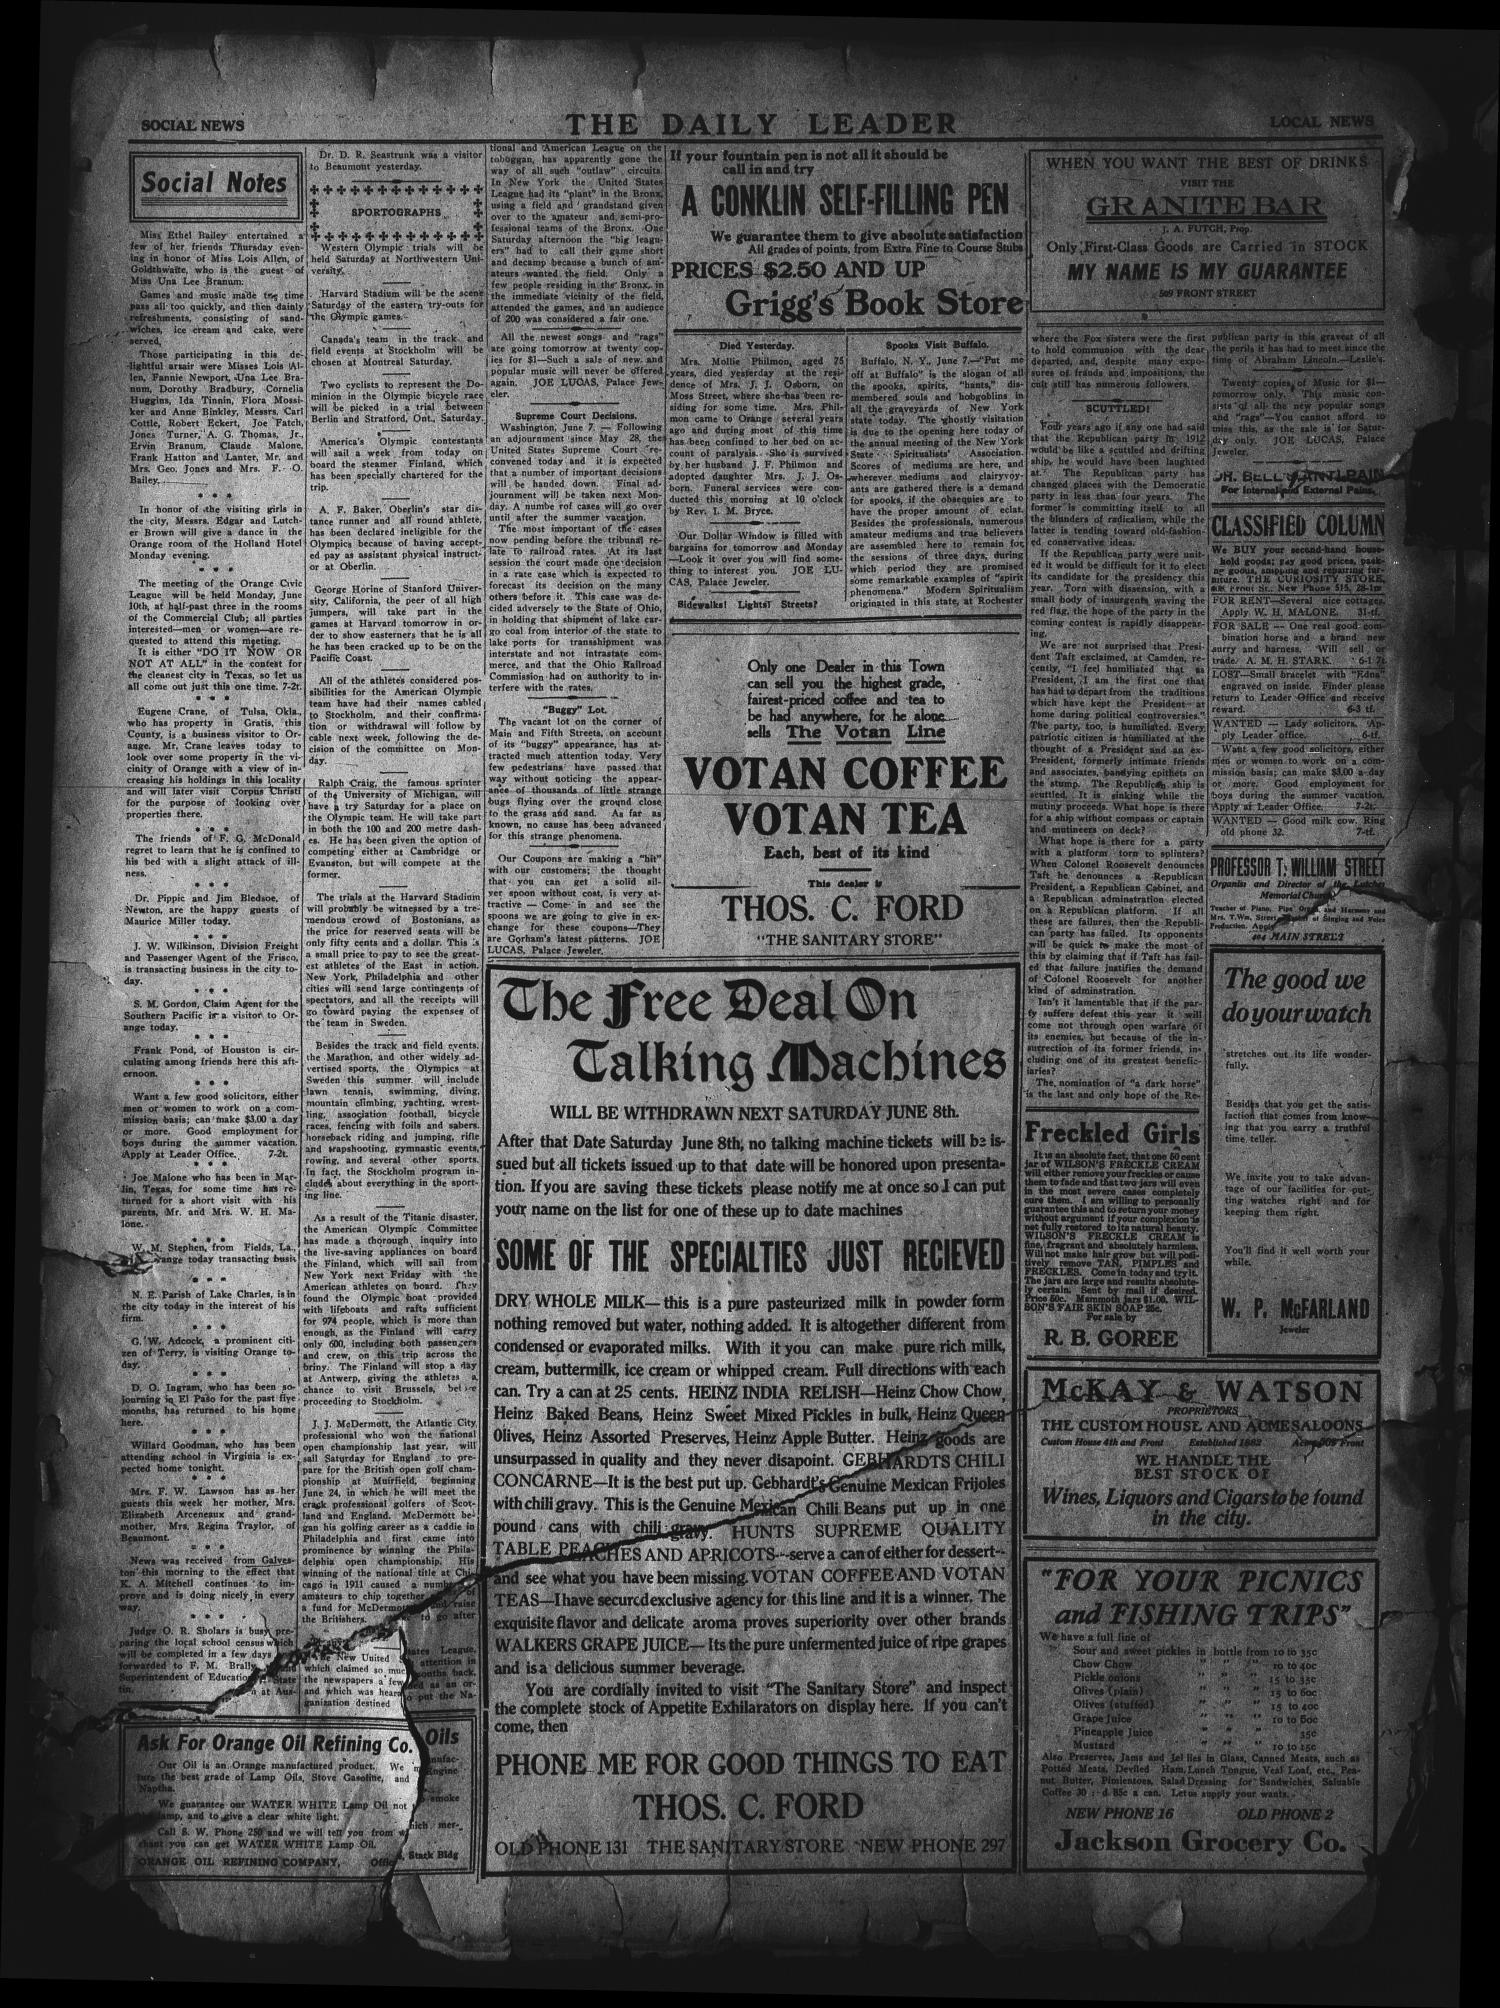 The Daily Leader. (Orange, Tex.), Vol. 5, No. 76, Ed. 1 Friday, June 7, 1912                                                                                                      [Sequence #]: 4 of 4